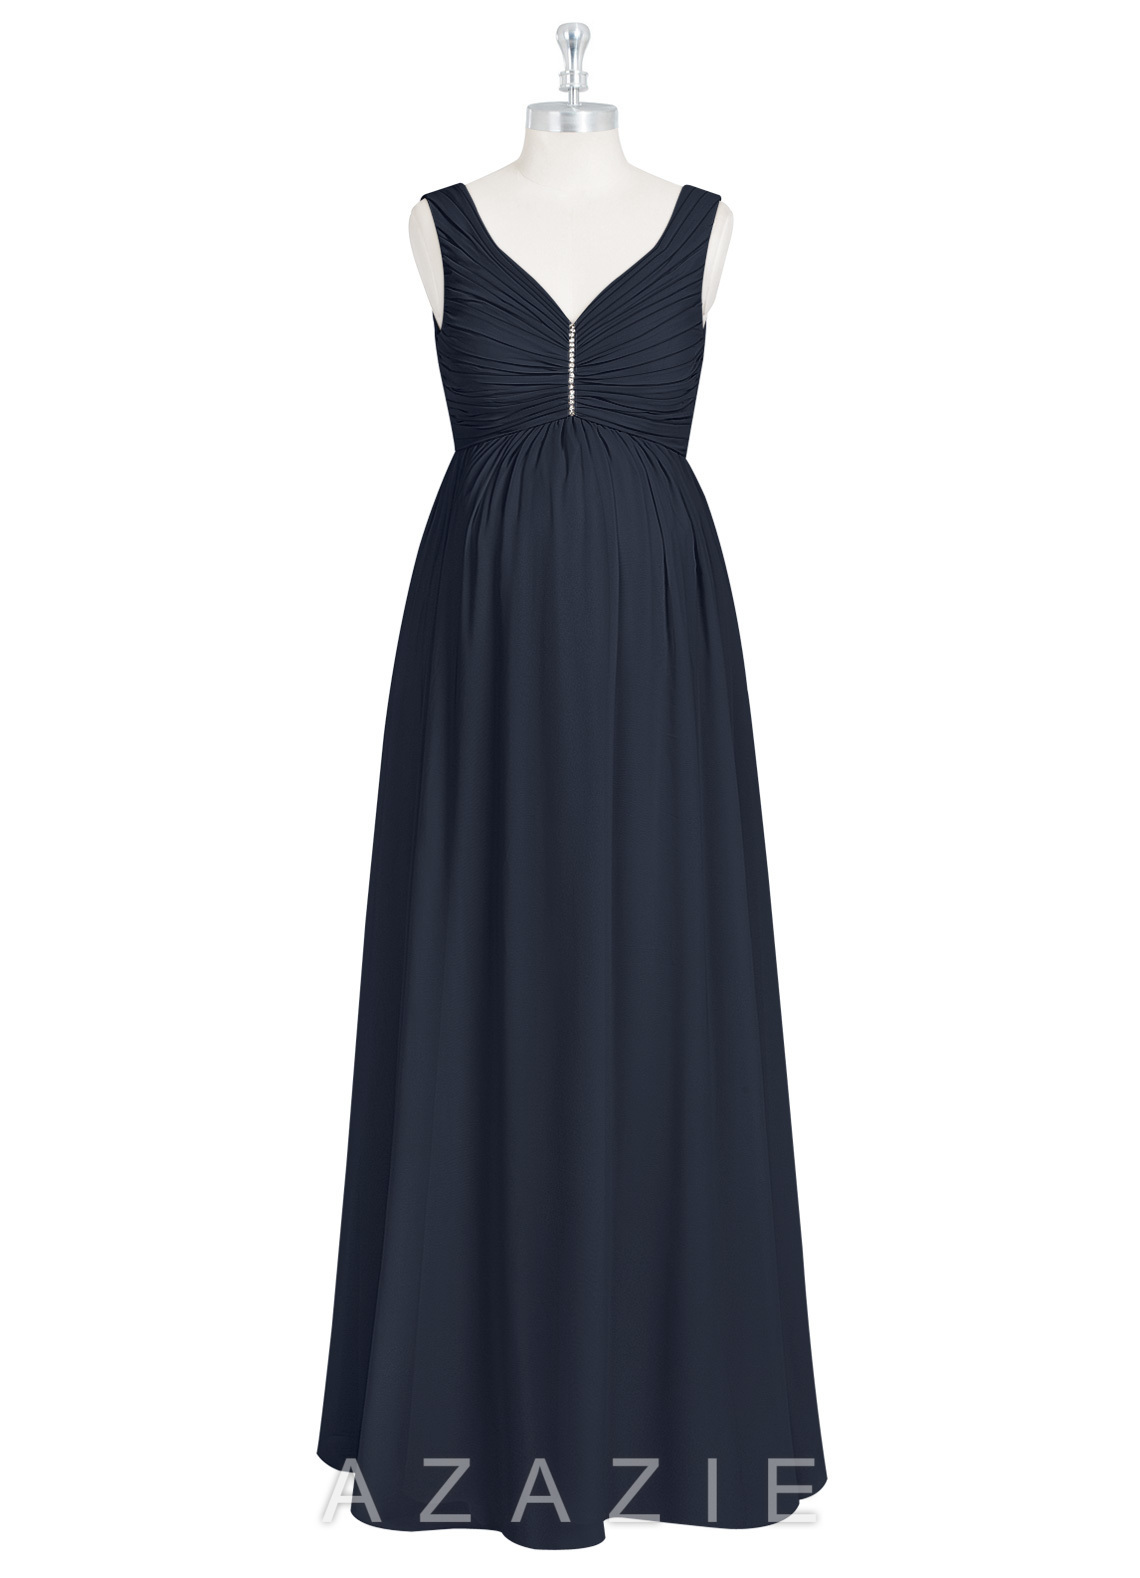 6ed980b3e7a2 Azazie Madison Maternity Bridesmaid Dress | Azazie